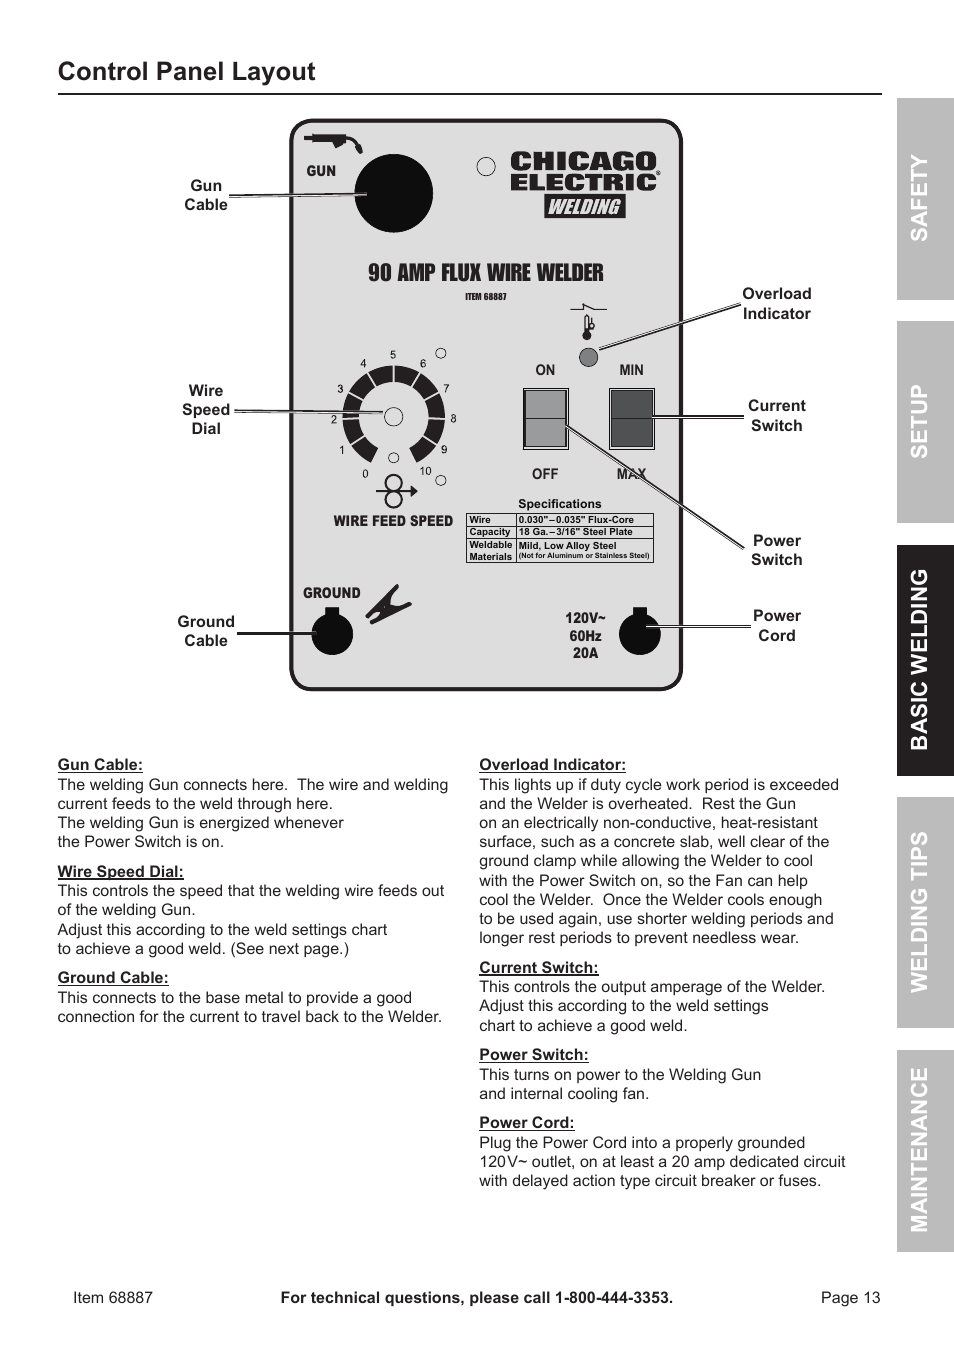 Control panel layout, 90 amp flux wire welder | Chicago Electric 90 ...